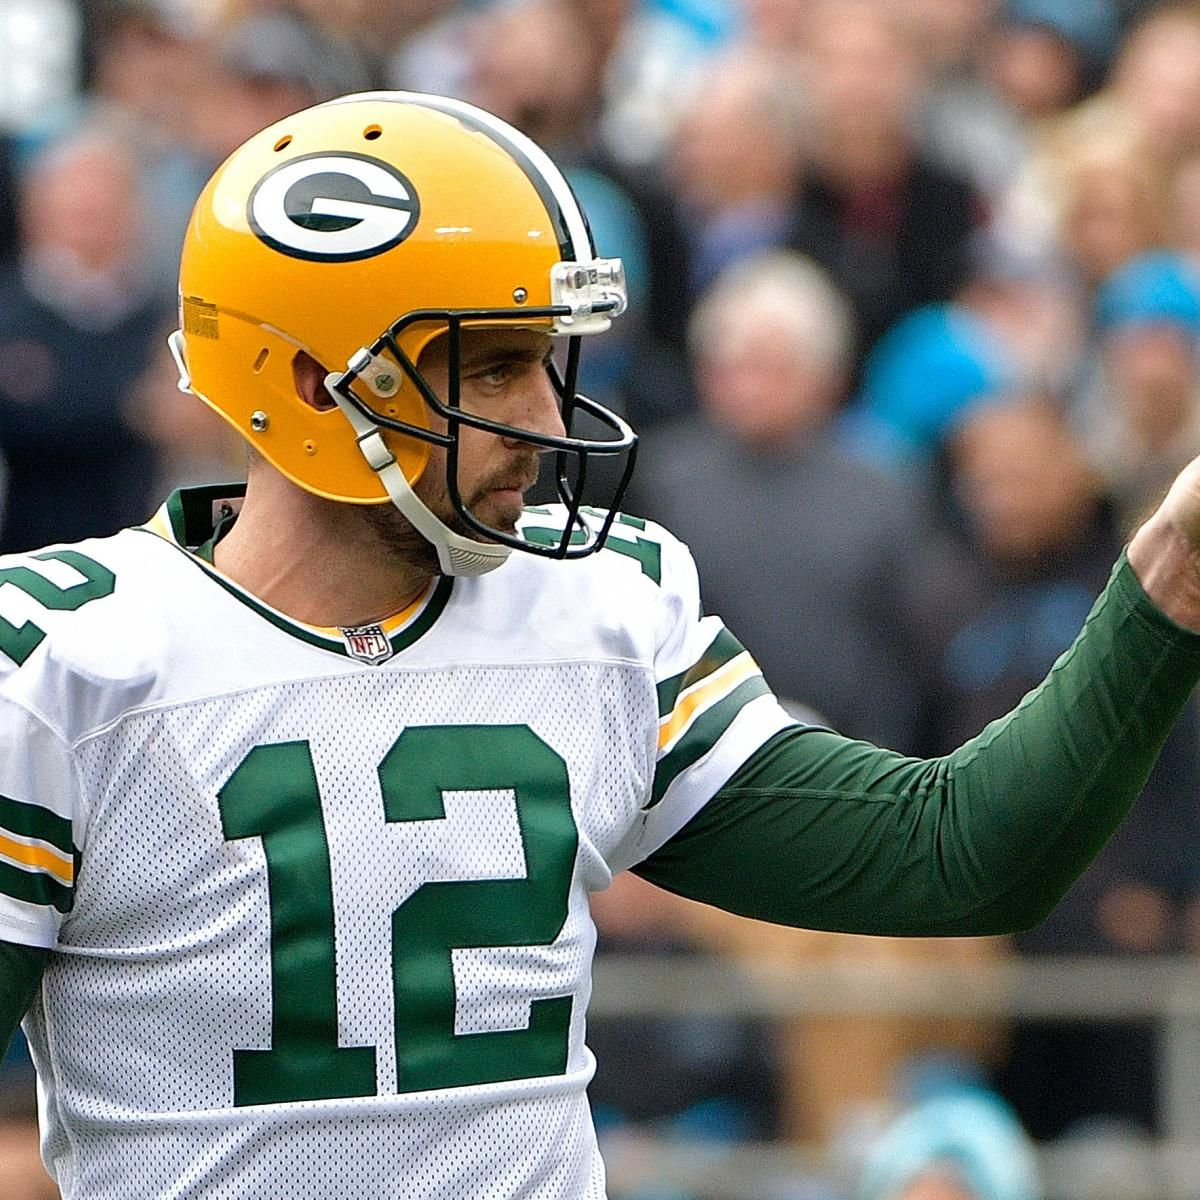 The Force Is Strong With Quarterback Aaron Rodgers And His Presence In The Green Bay Packers Lineup Provided The Team Green Bay Packers Green Bay Packers